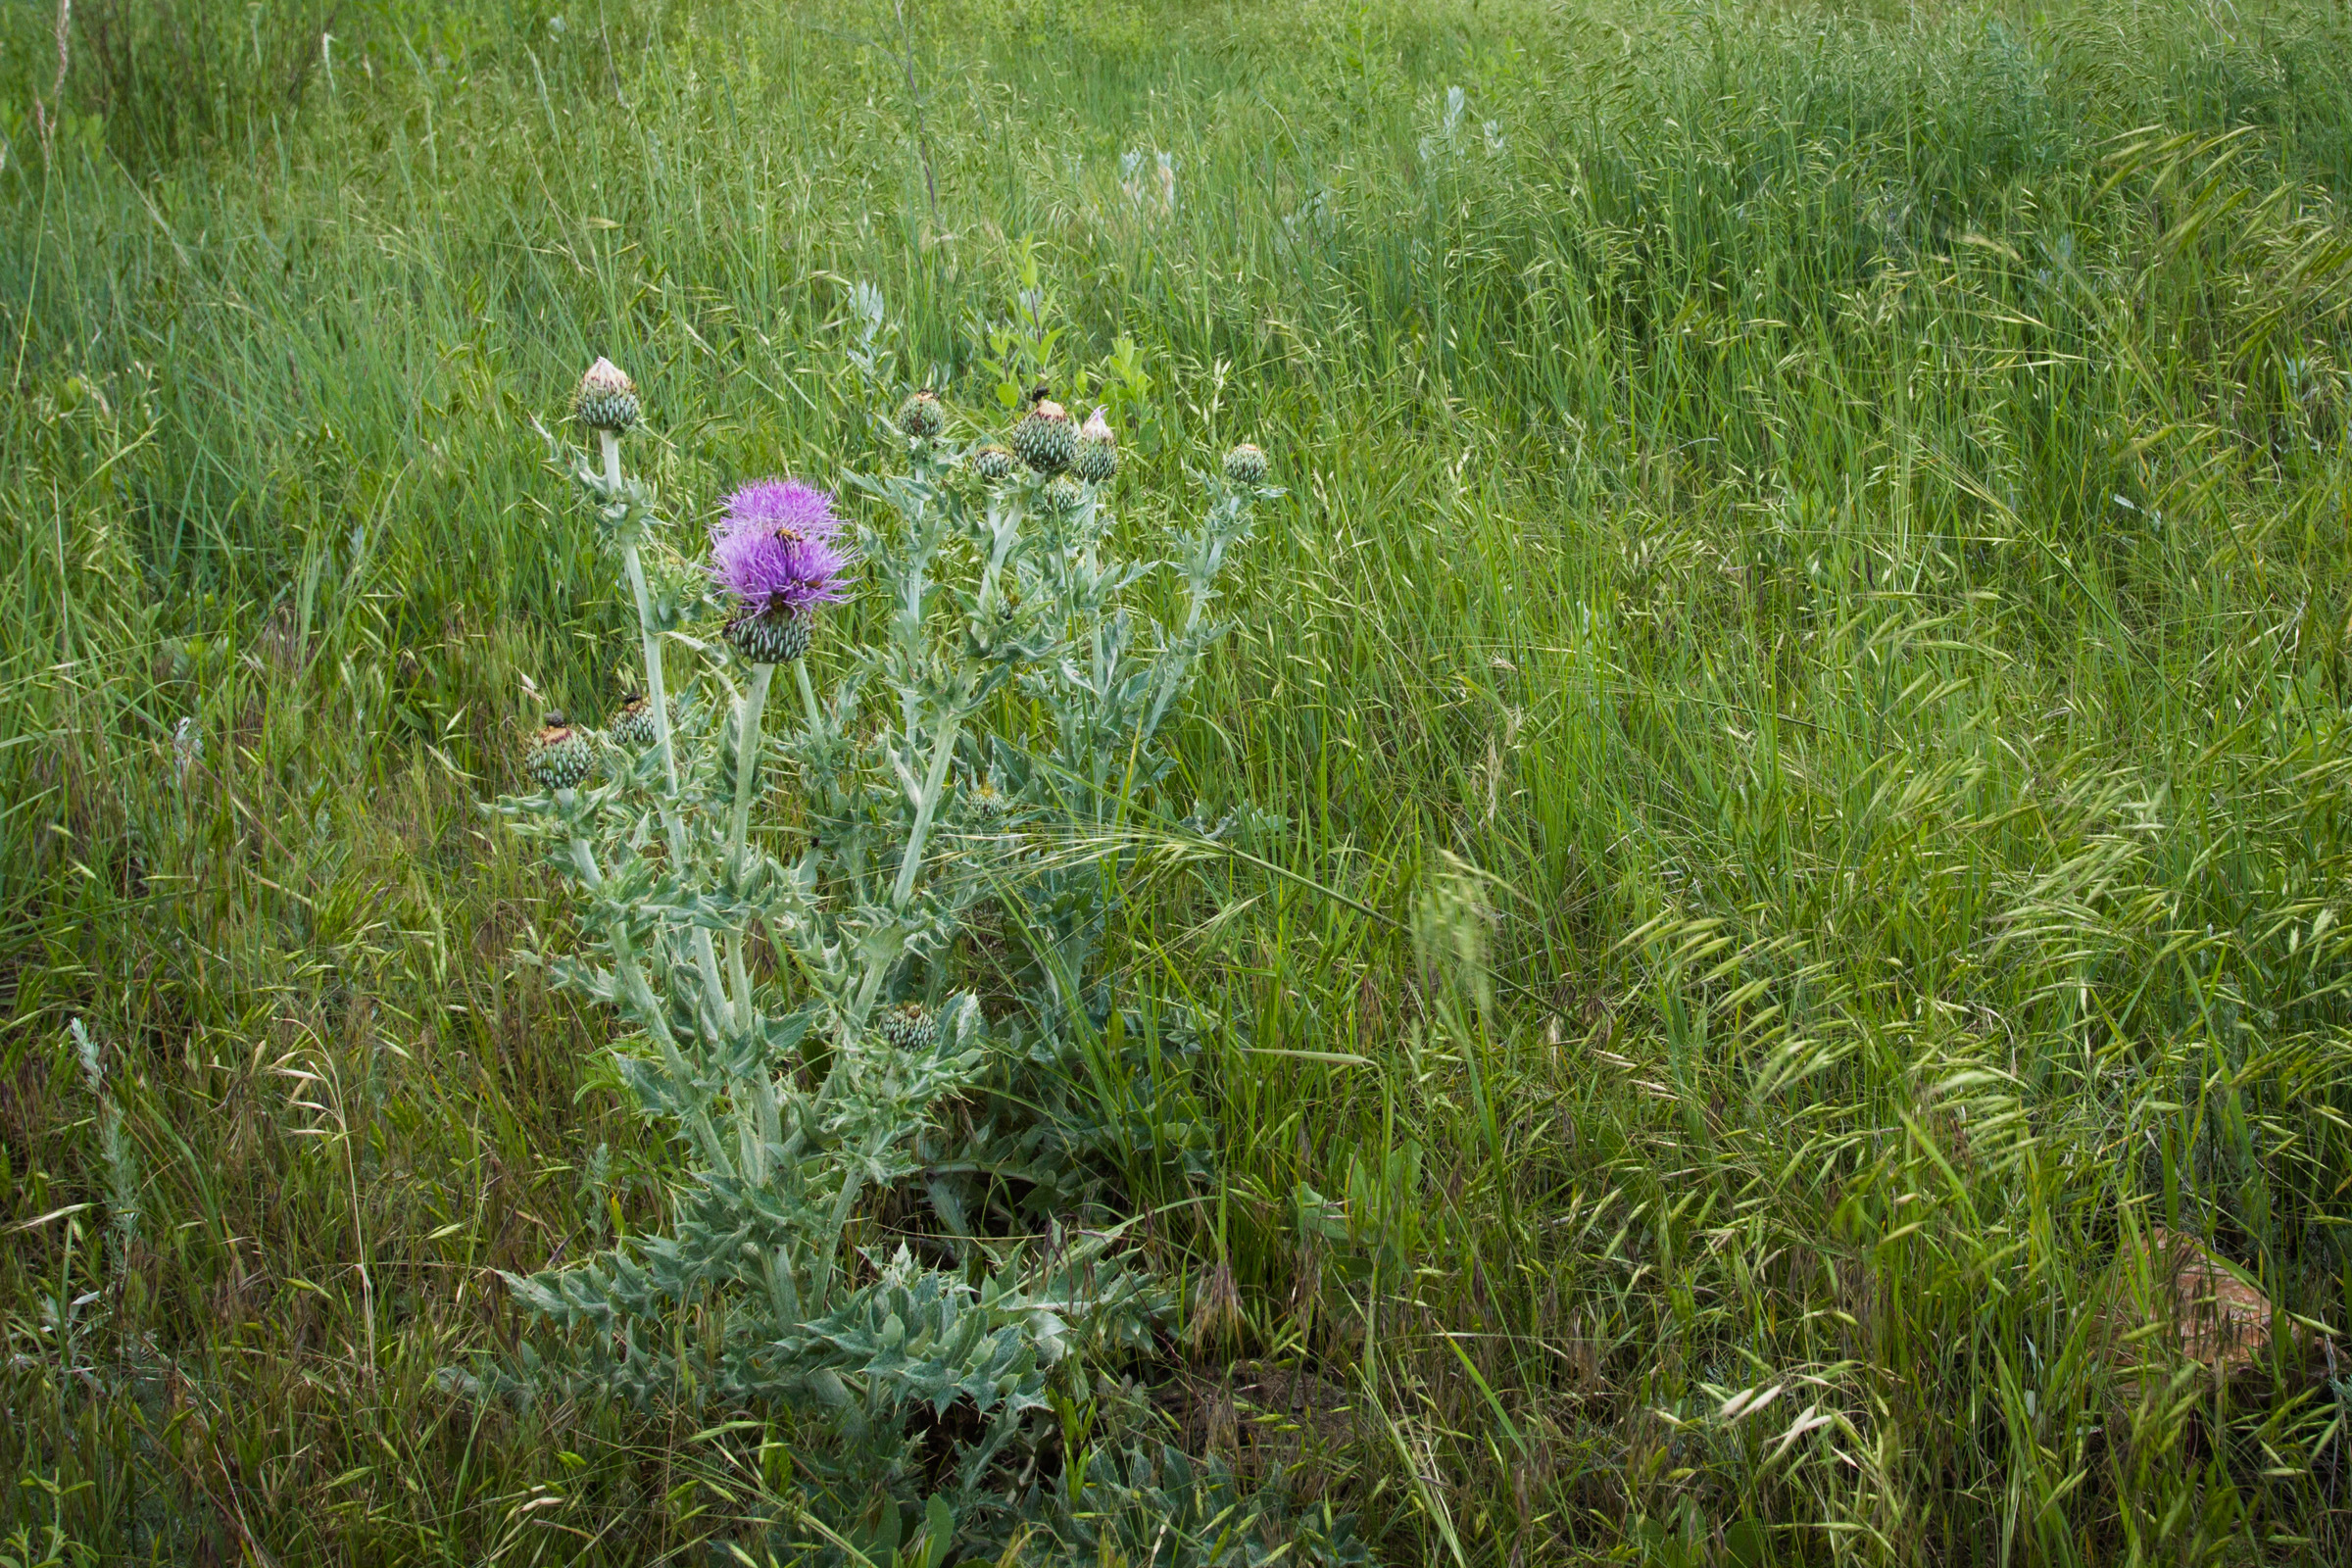 The wavyleaf thistle has silvery-green foliage and pink-purple flowers. The stem and leaves are covered in short pale hairs.